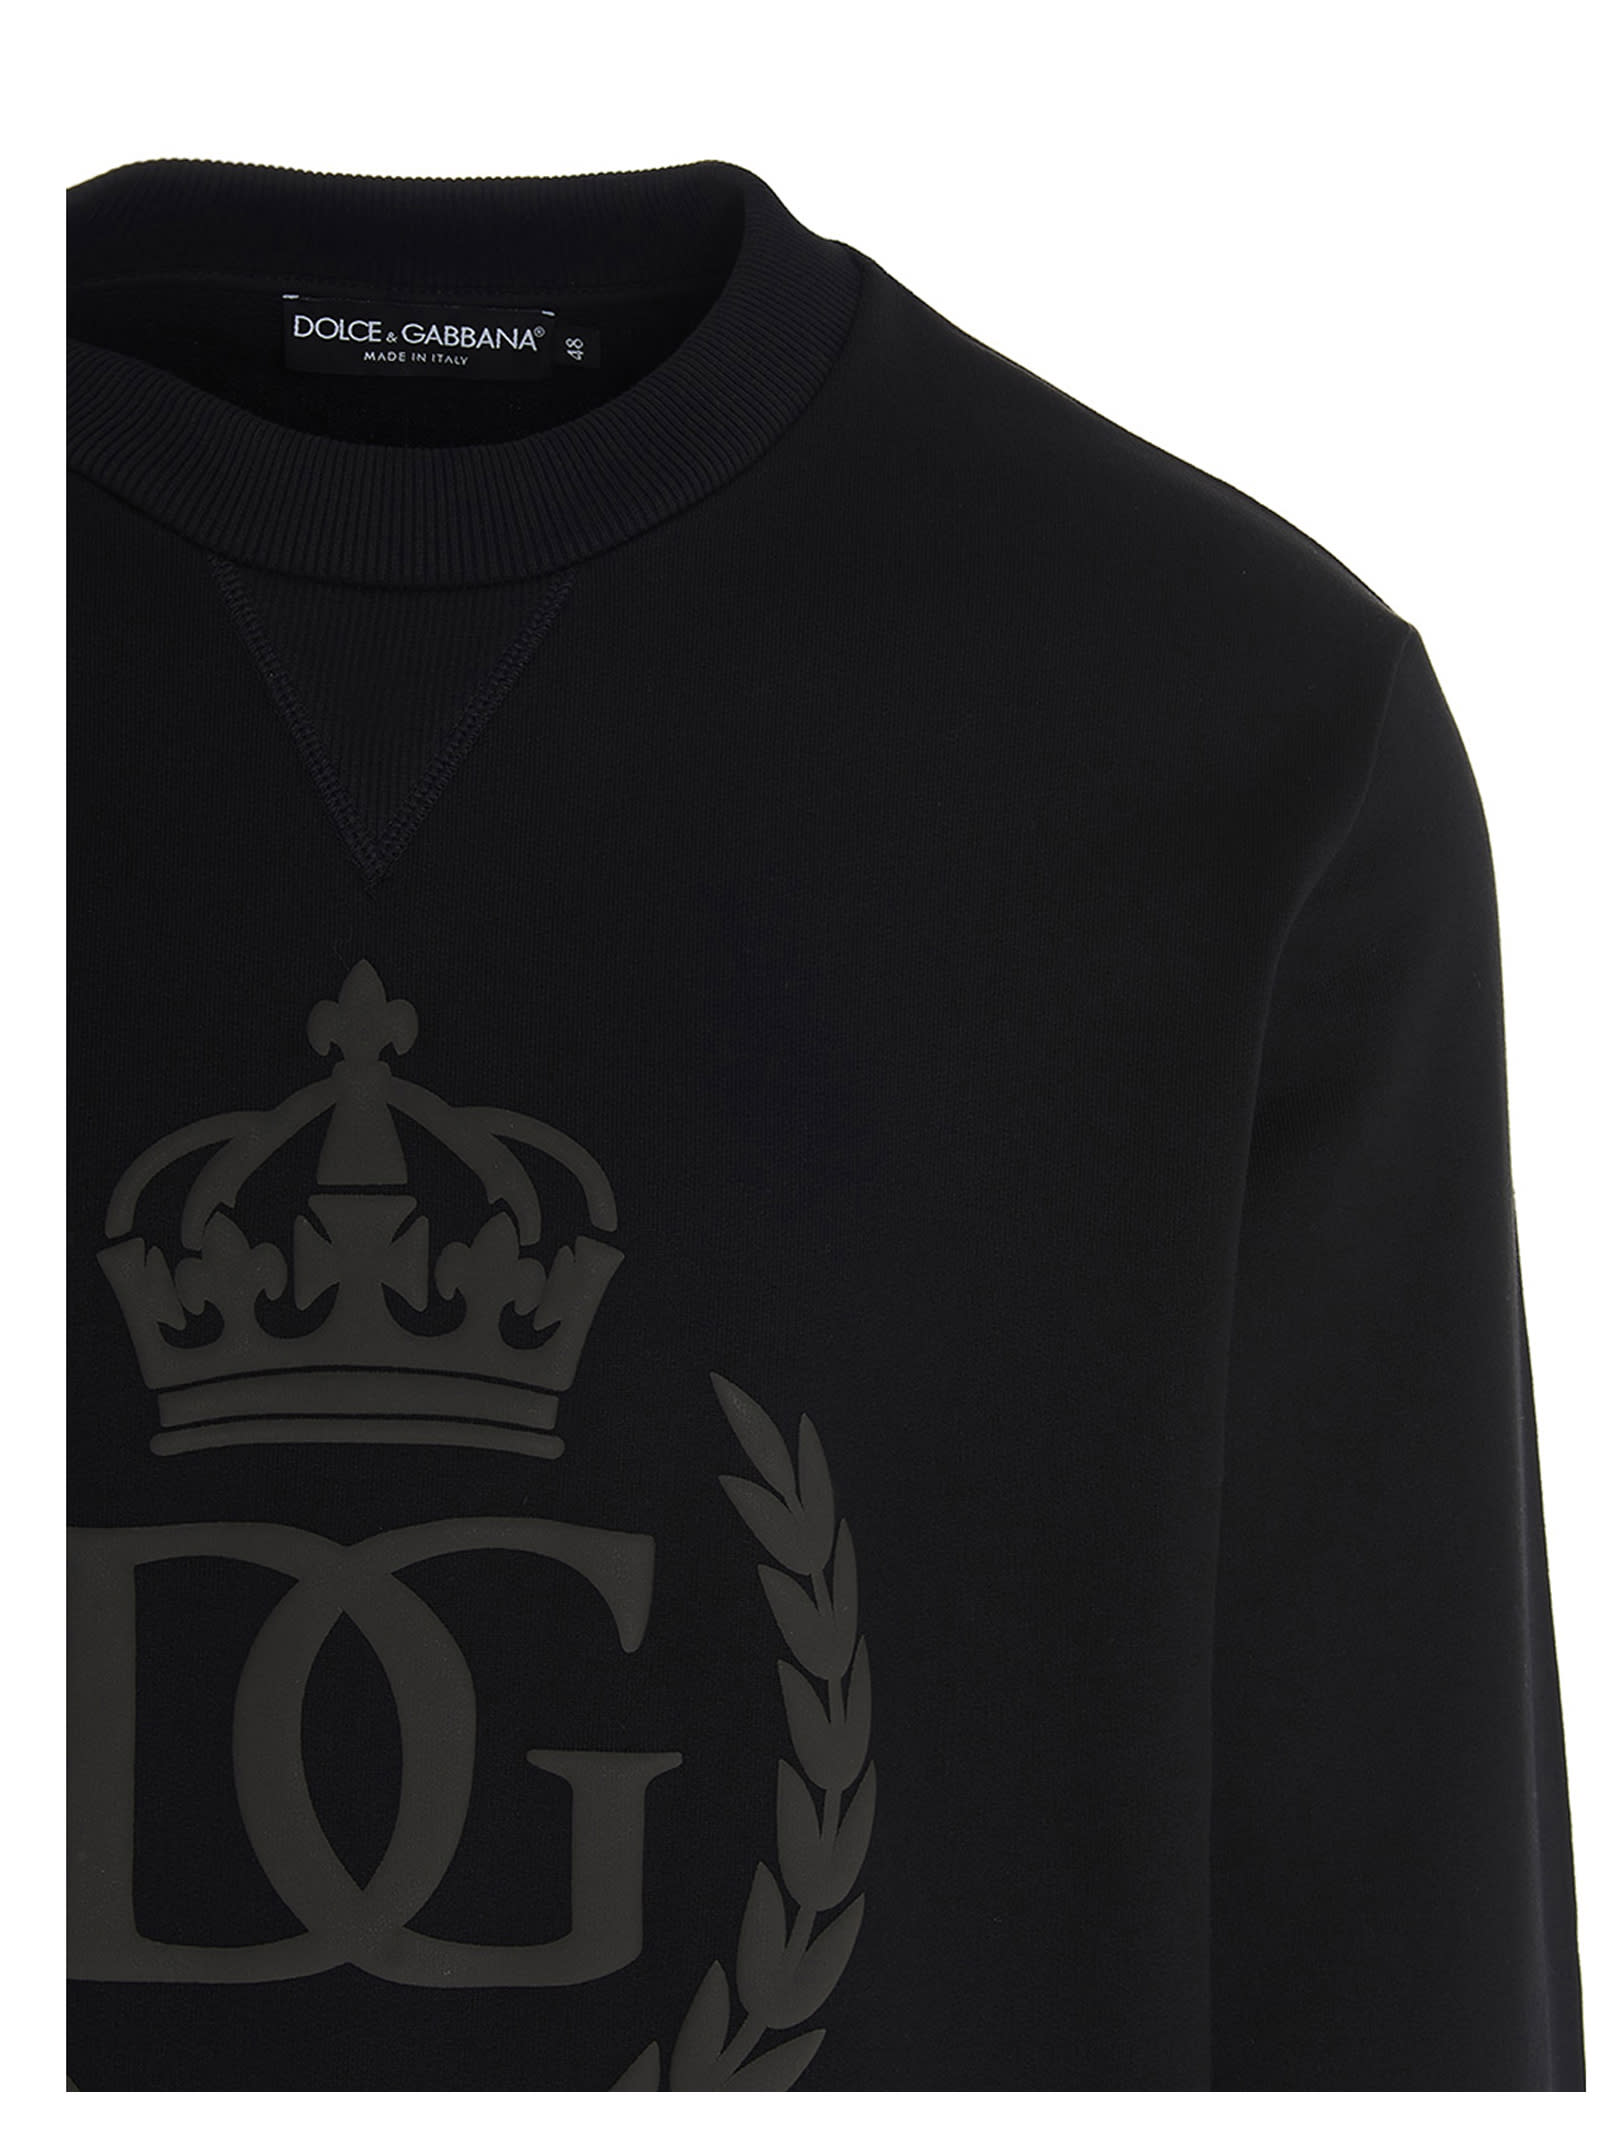 Best Price Dolce & Gabbana Sweatshirt - Top Quality